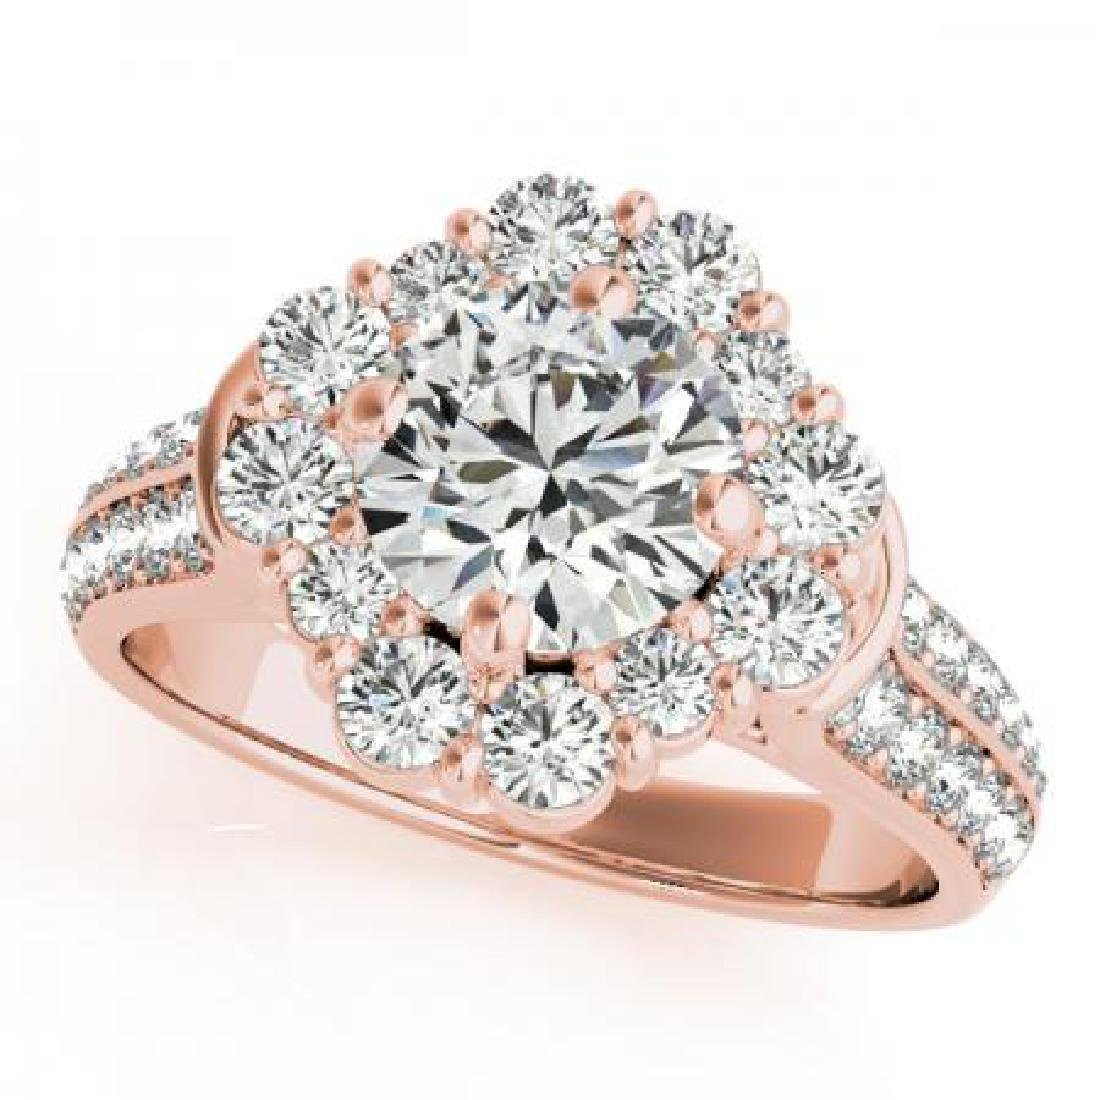 CERTIFIED 18KT ROSE GOLD 1.74 CT G-H/VS-SI1 DIAMOND HAL